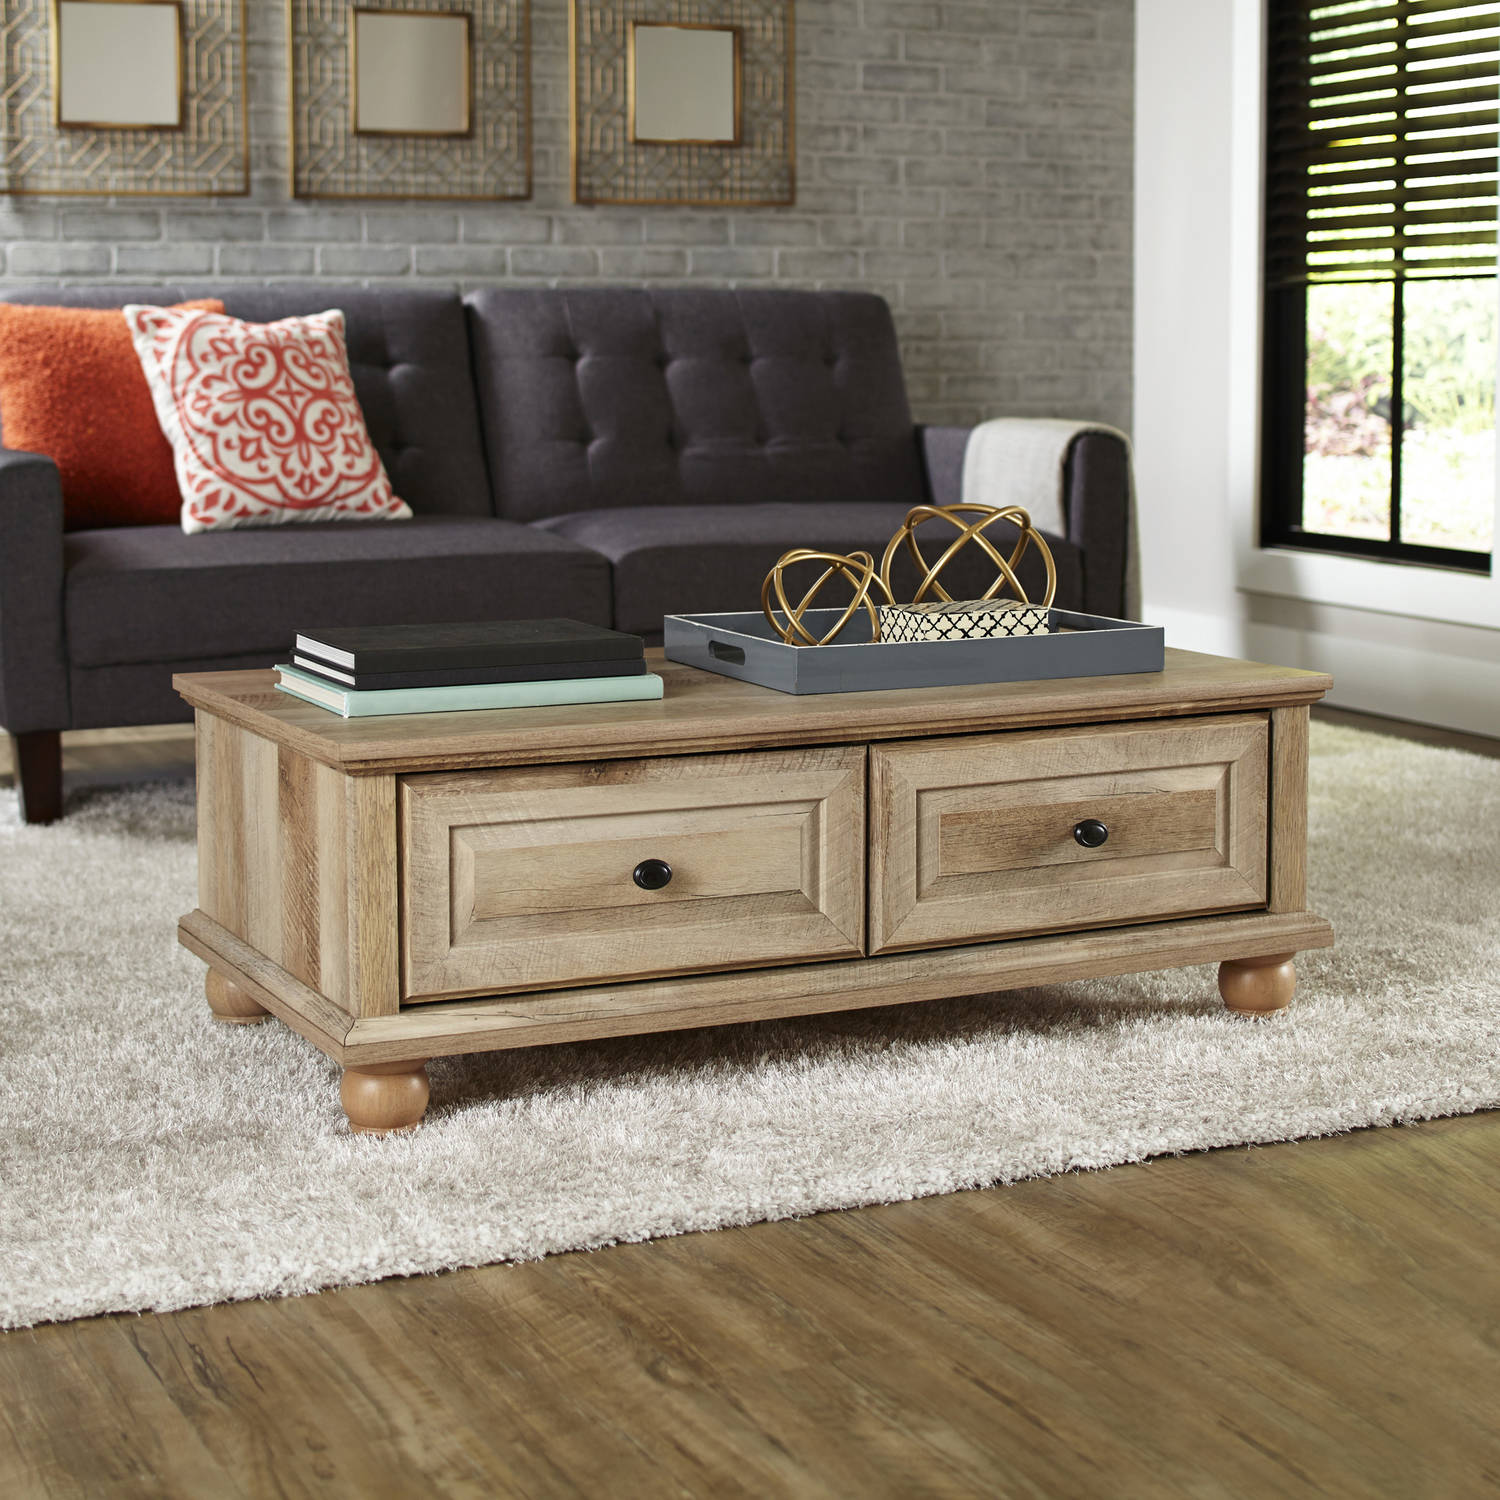 Better Homes & Gardens Crossmill Coffee Table, Weathered Finish